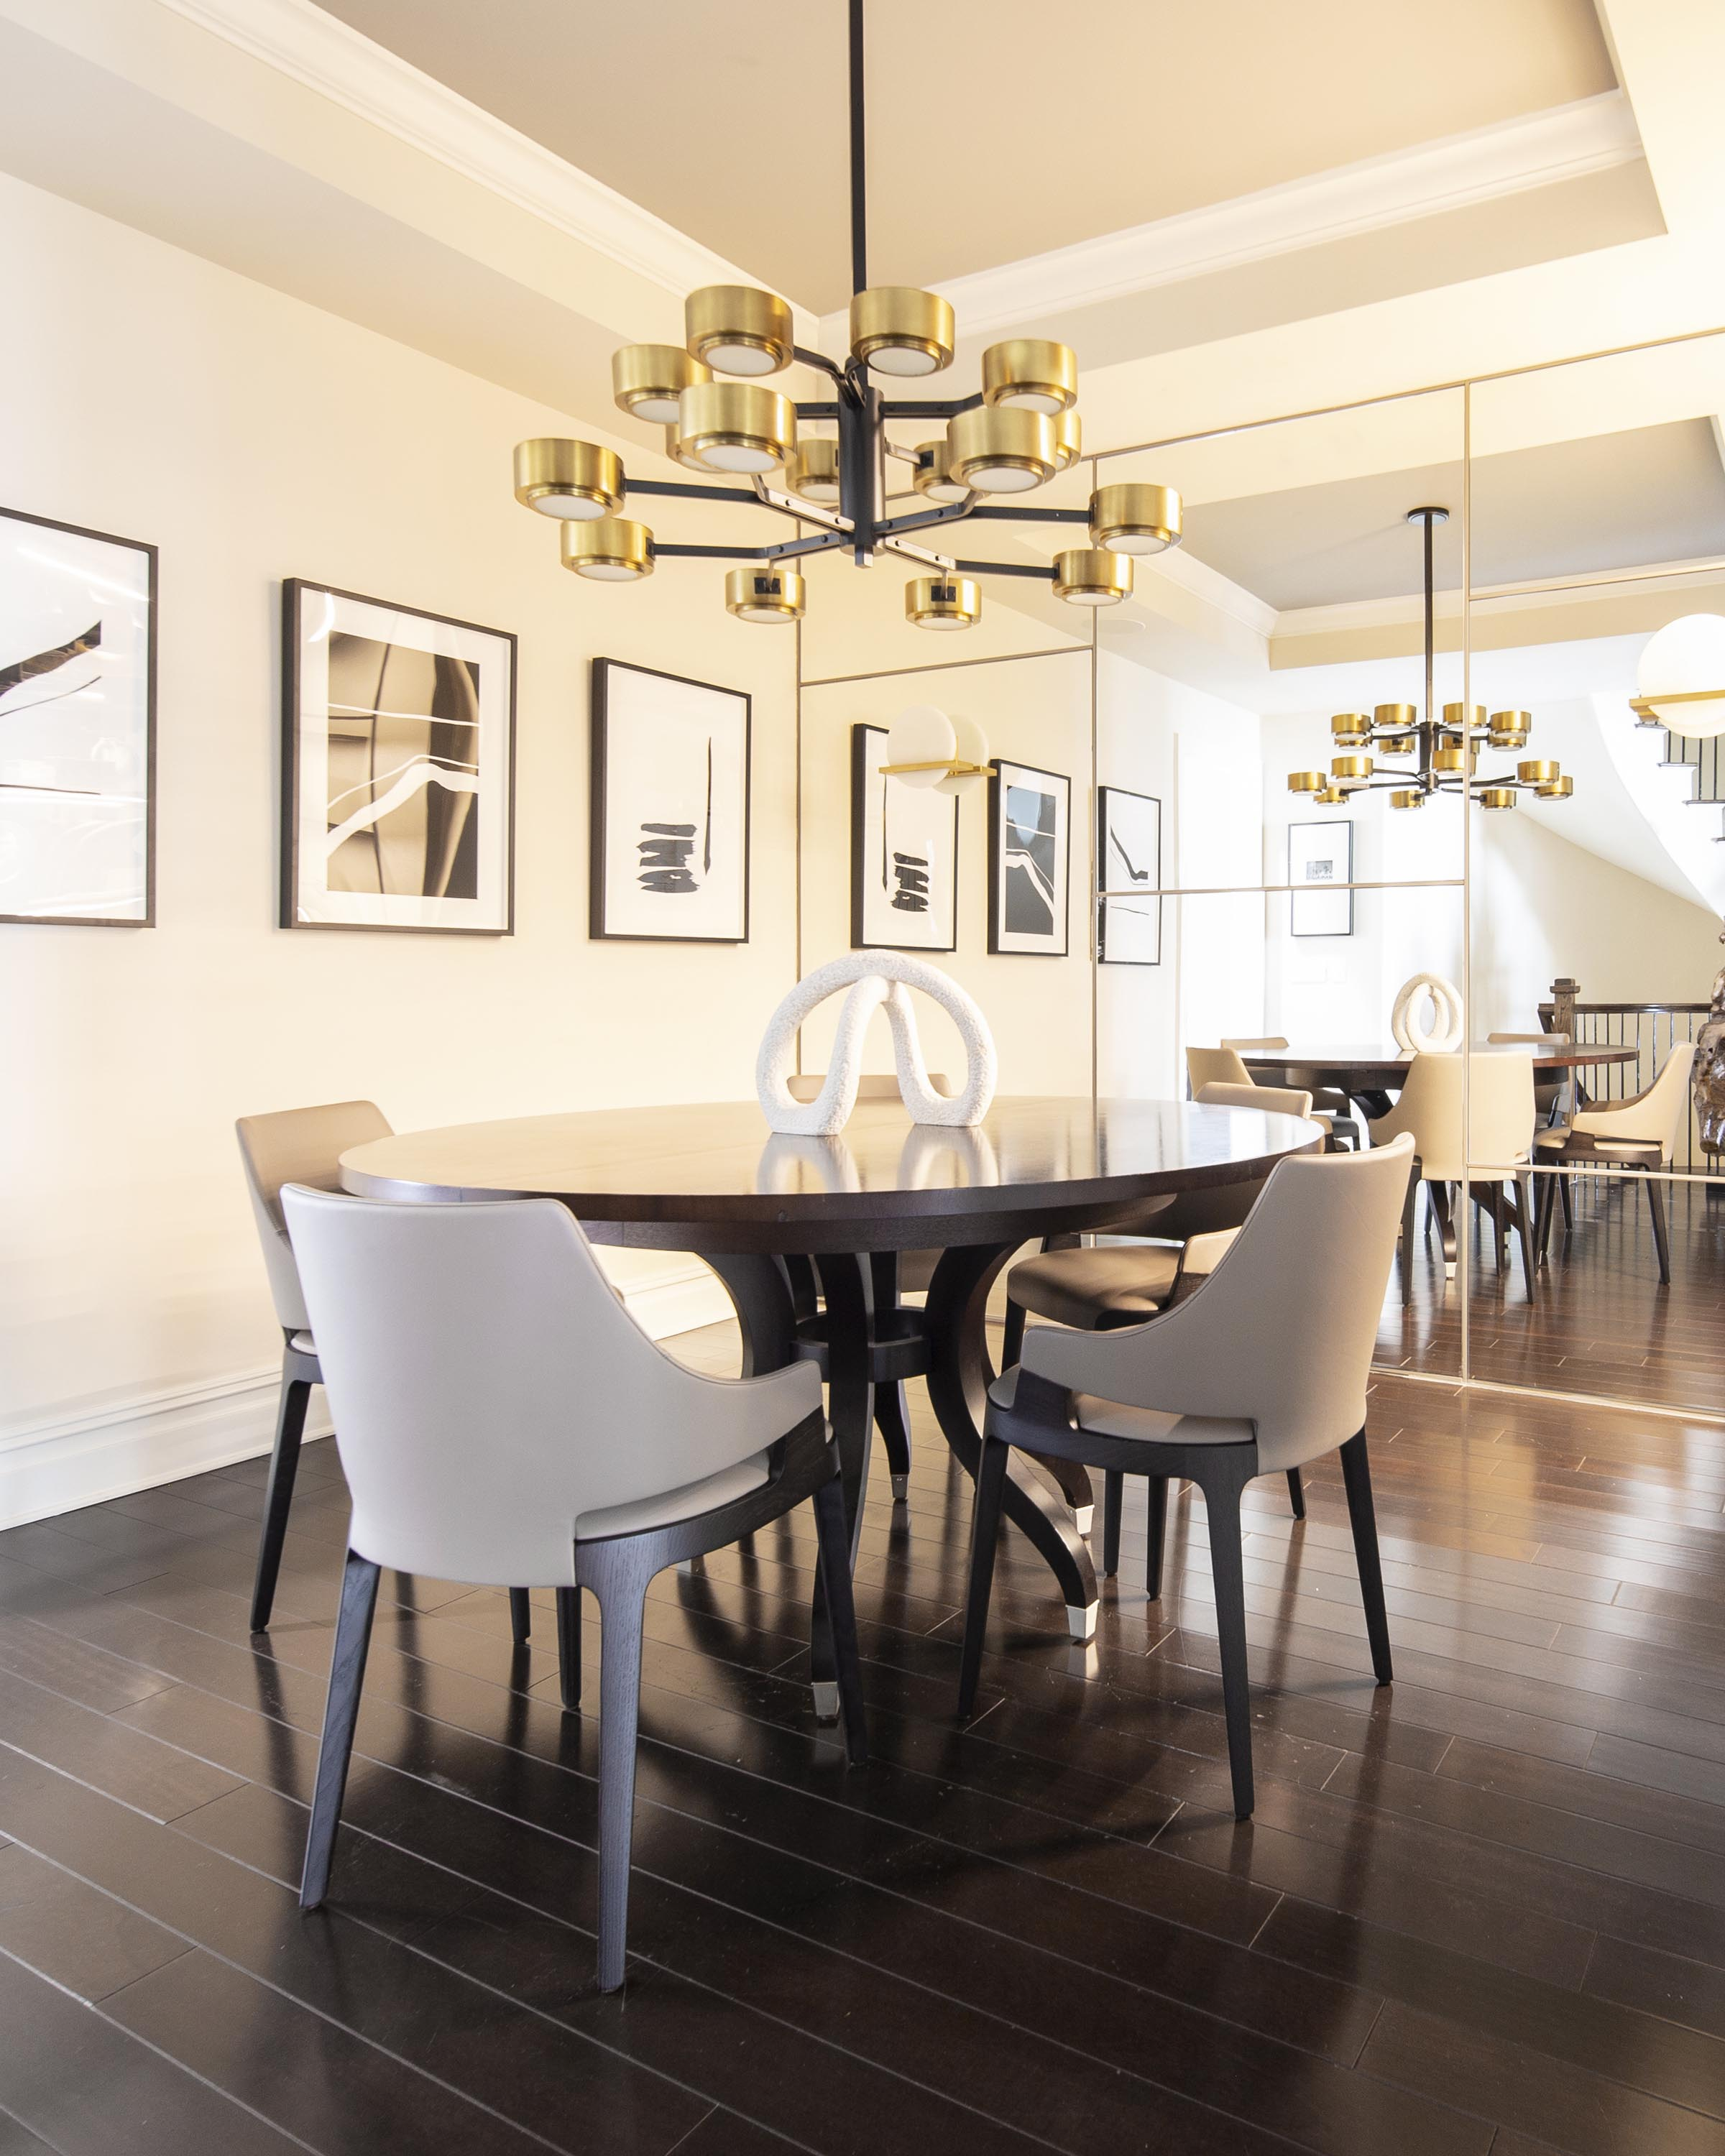 Dining room with round wooden table, chairs, custom chandelier, hardwood floor and artworks on the wall